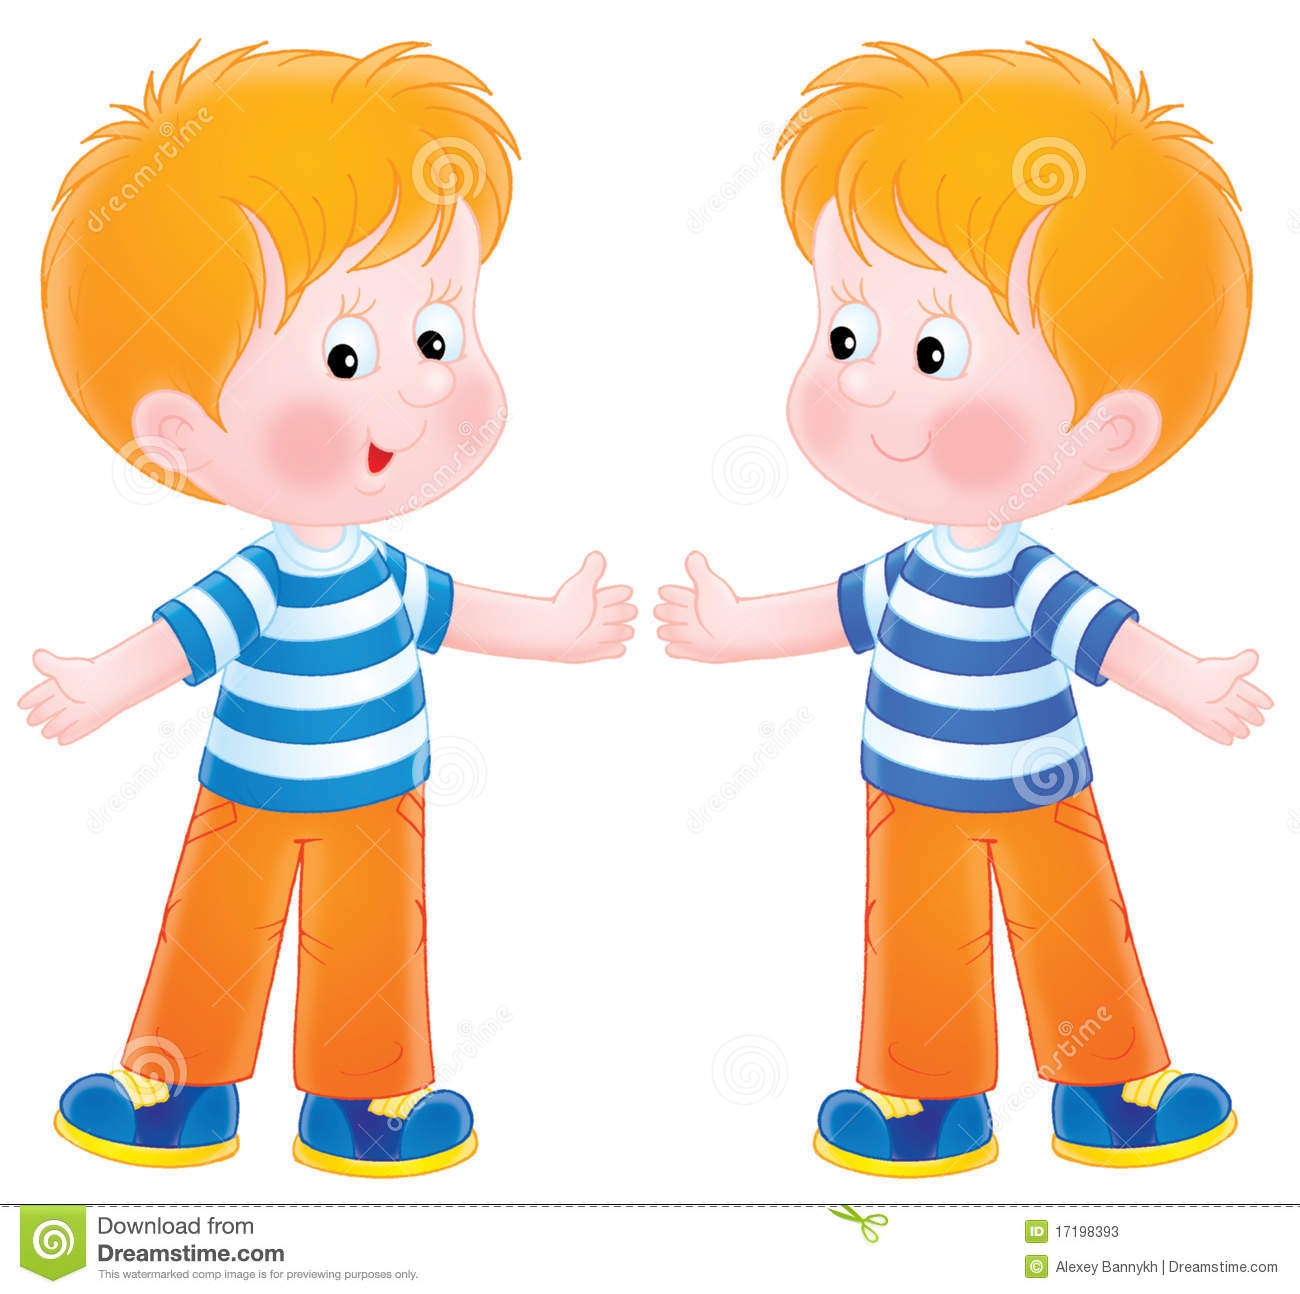 banner free download Transparent free for download. Twins clipart guy.